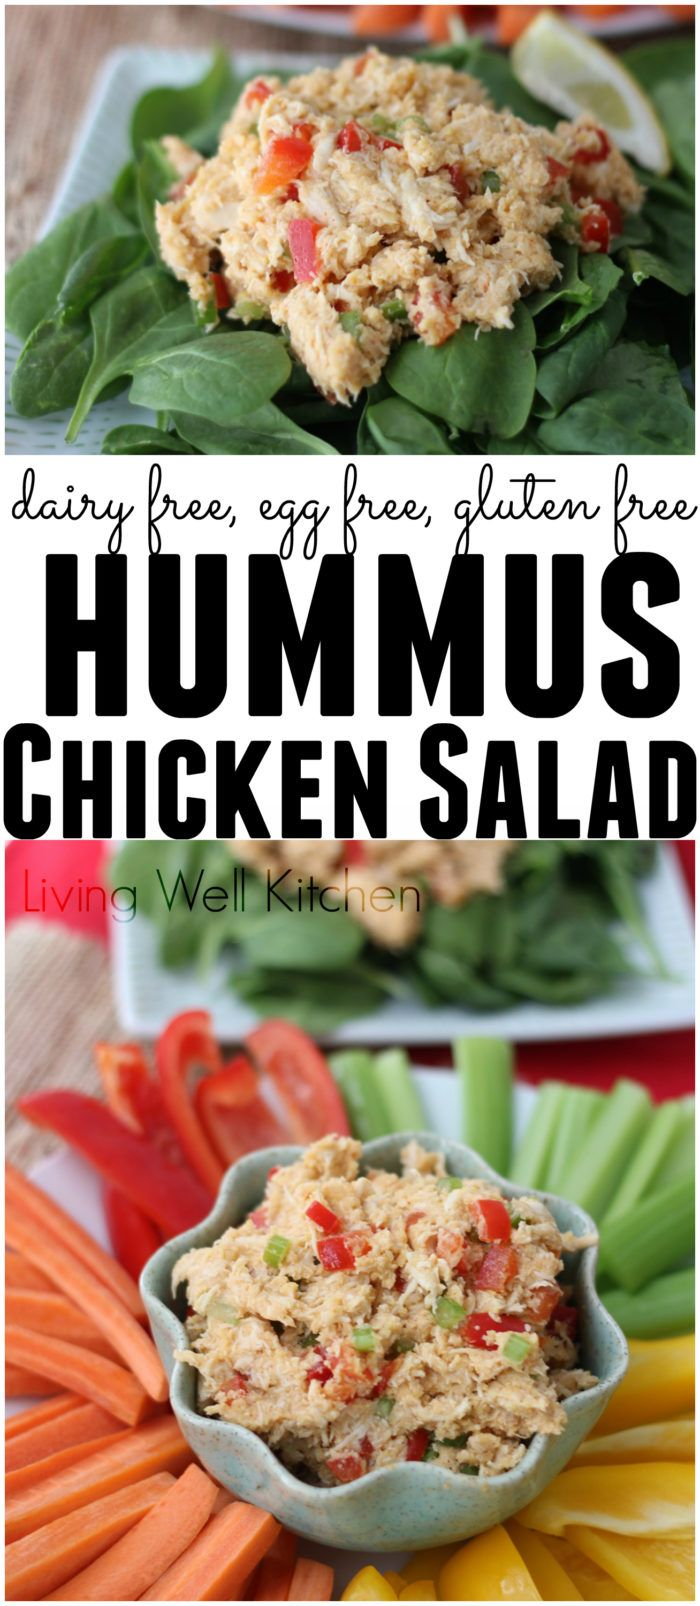 Hummus Chicken Salad from @memeinge is a creamy, allergy-friendly chicken salad full of protein and fiber